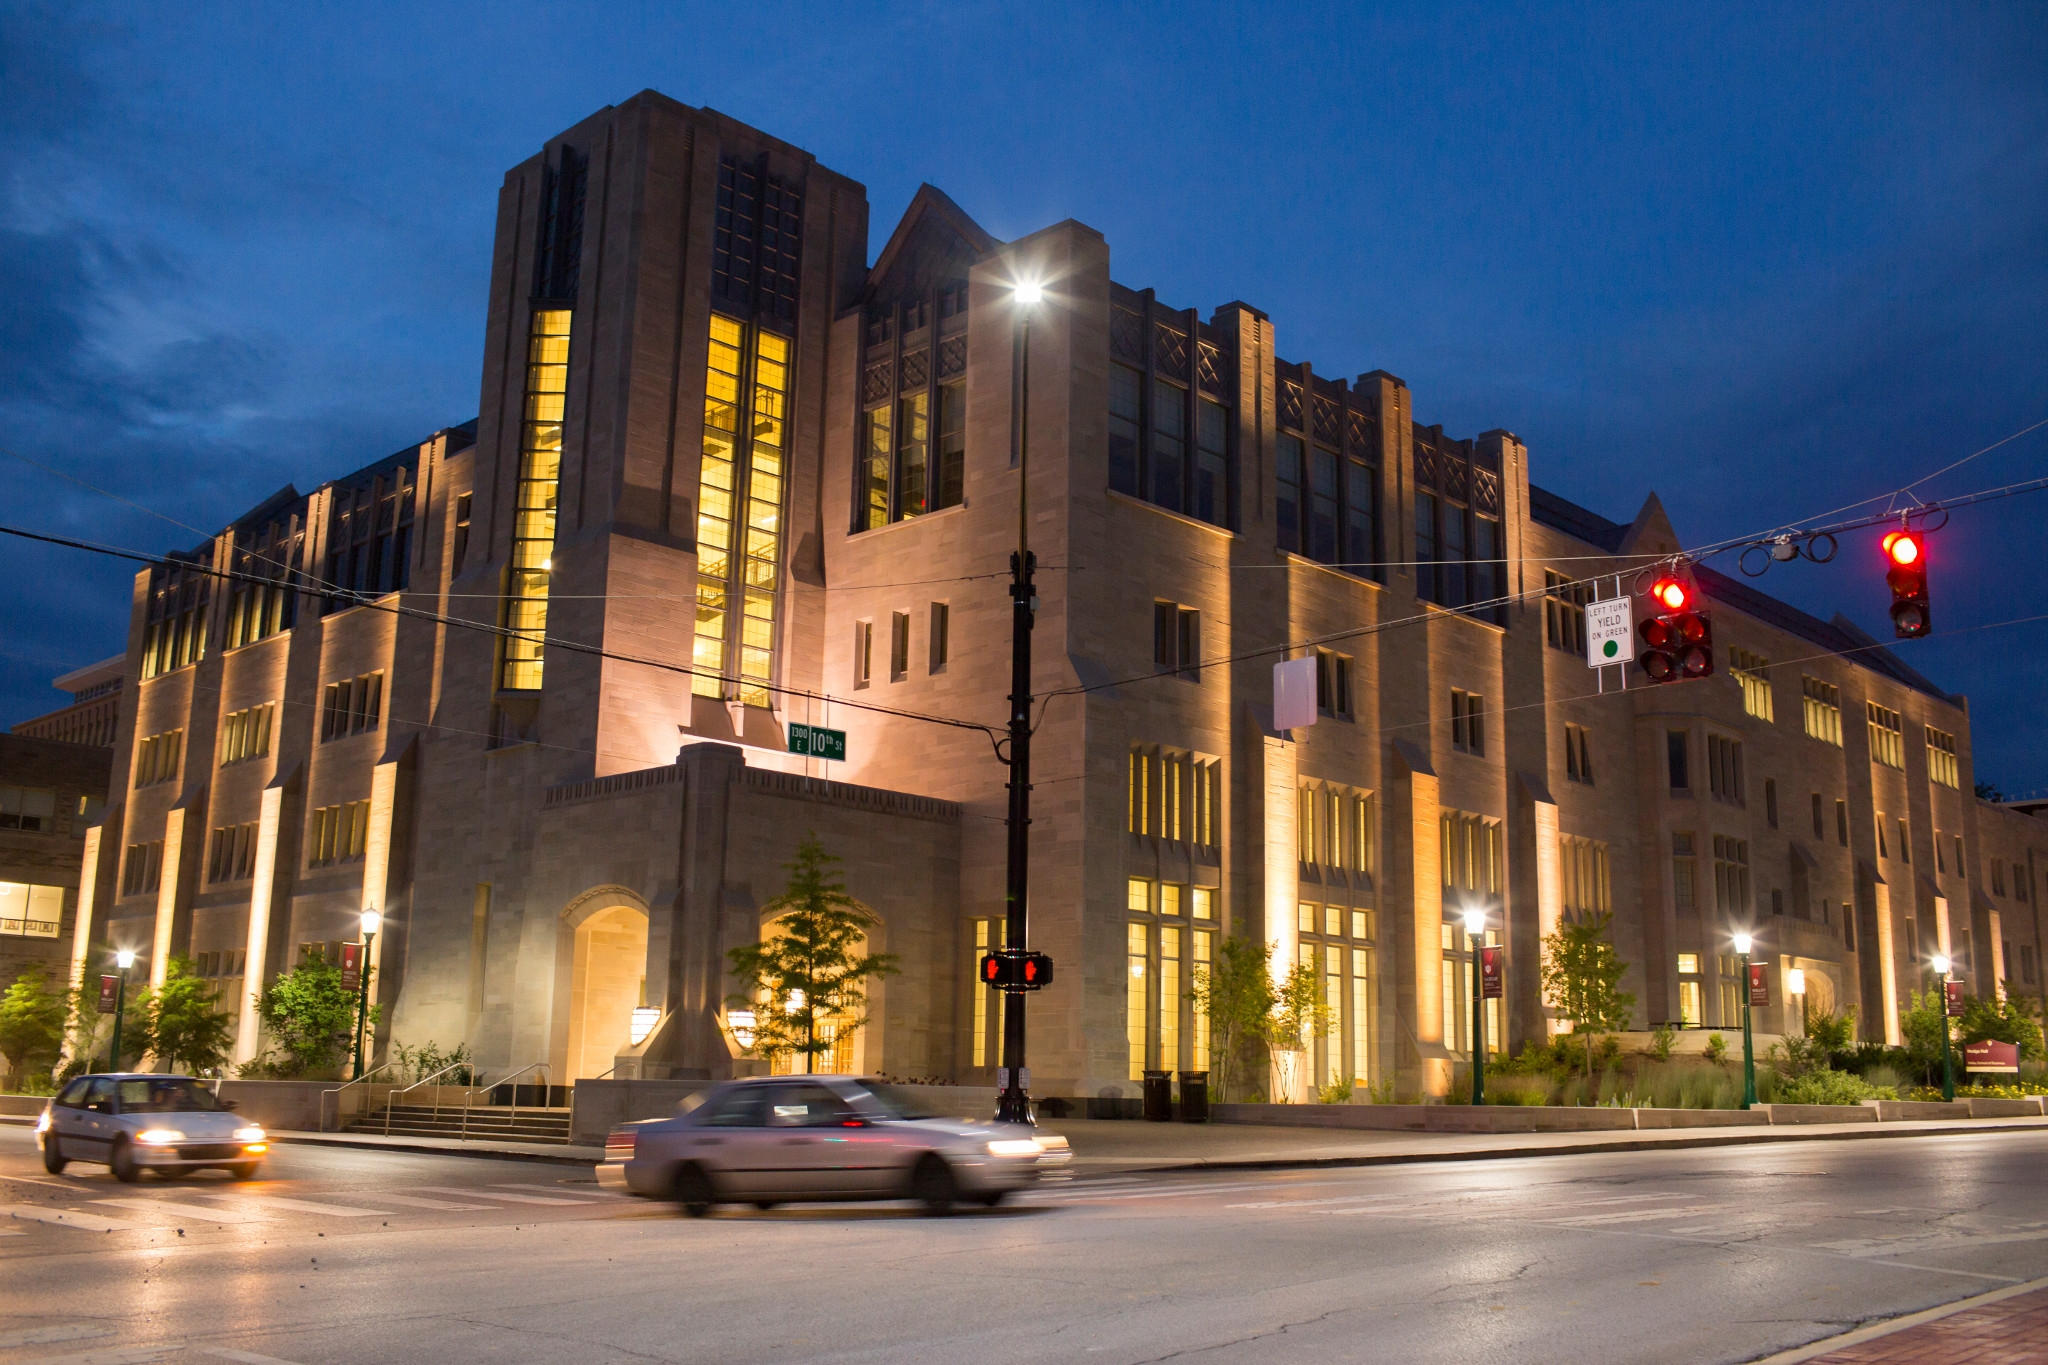 A nighttime photo of Hodge Hall, the undergraduate Kelley School of Business building on IU's Bloomington campus.